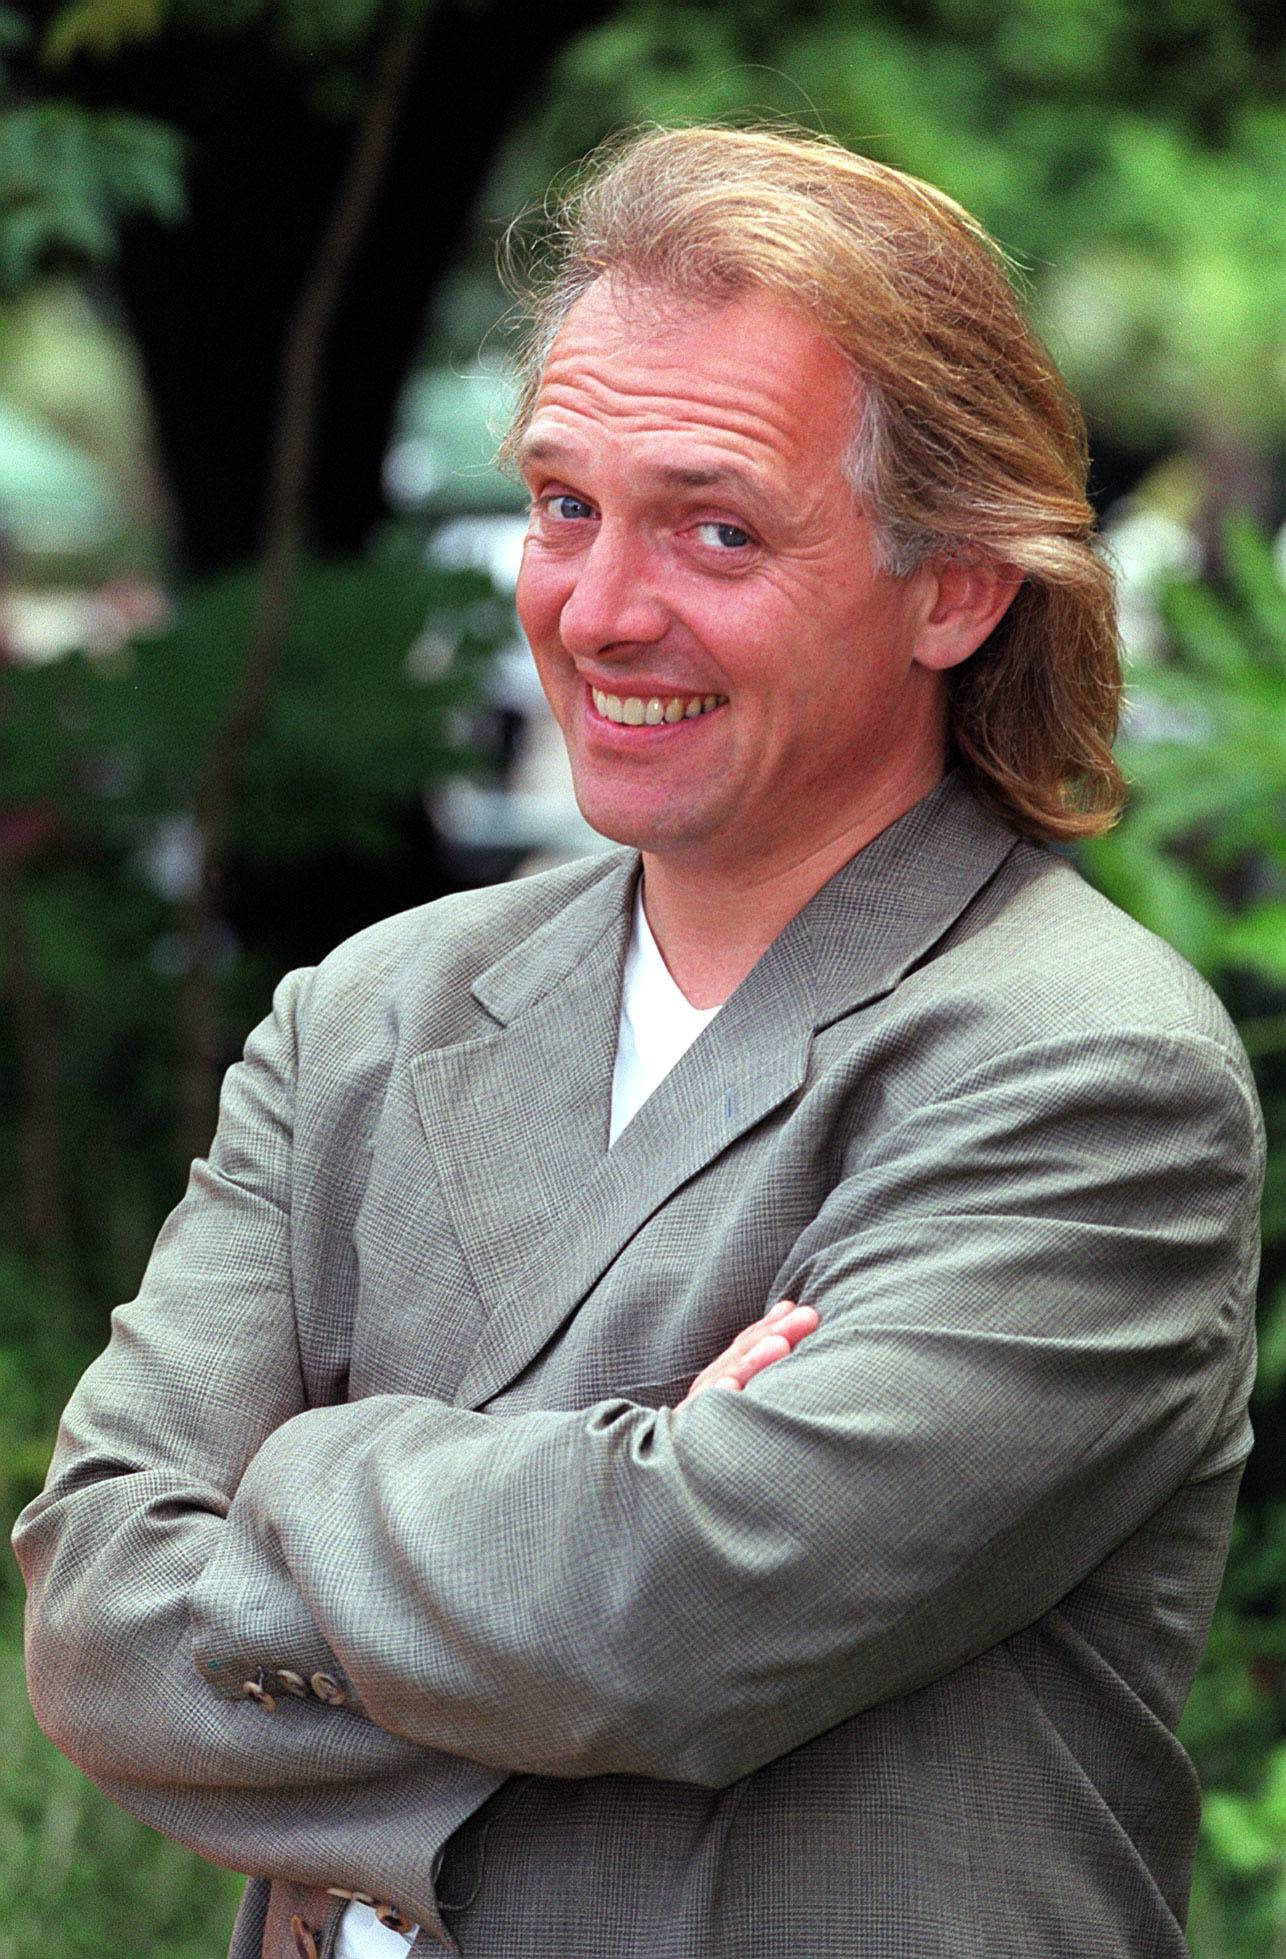 British comedian Rik Mayall, one of a generation of performers who injected post-punk energy into British comedy, has died.